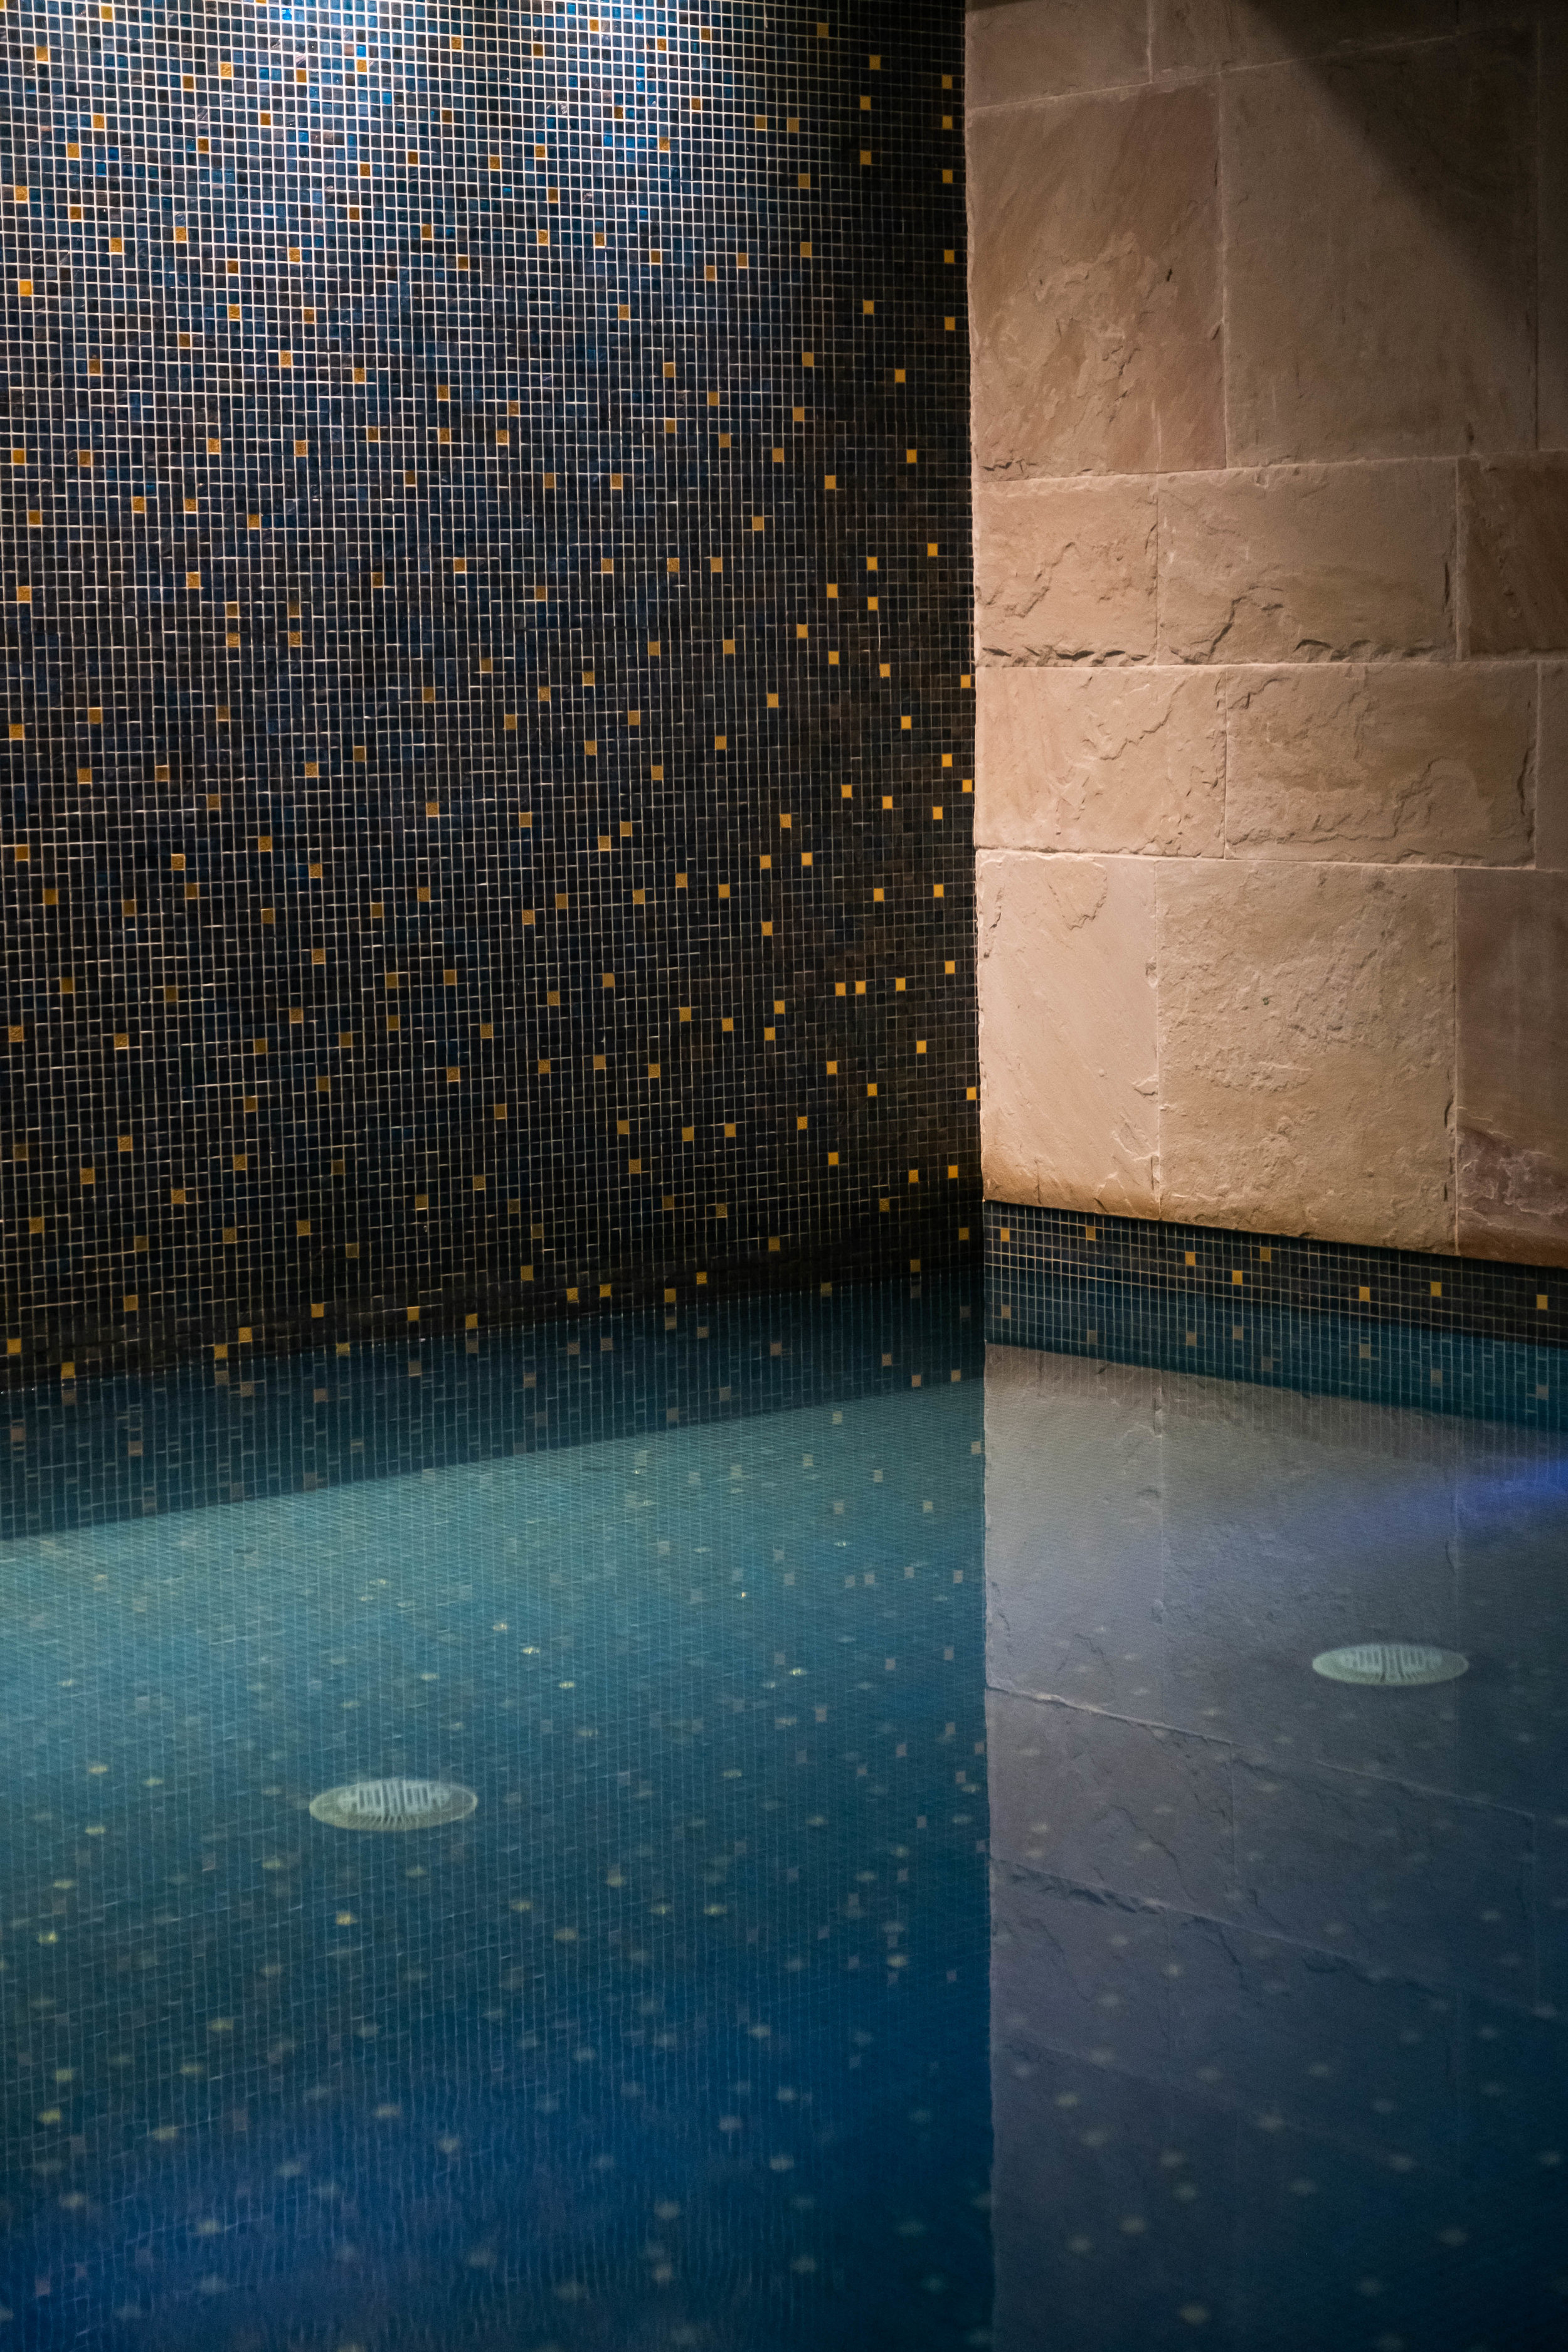 The relaxation pool in the hotel's spa is exactly for that, relaxing.